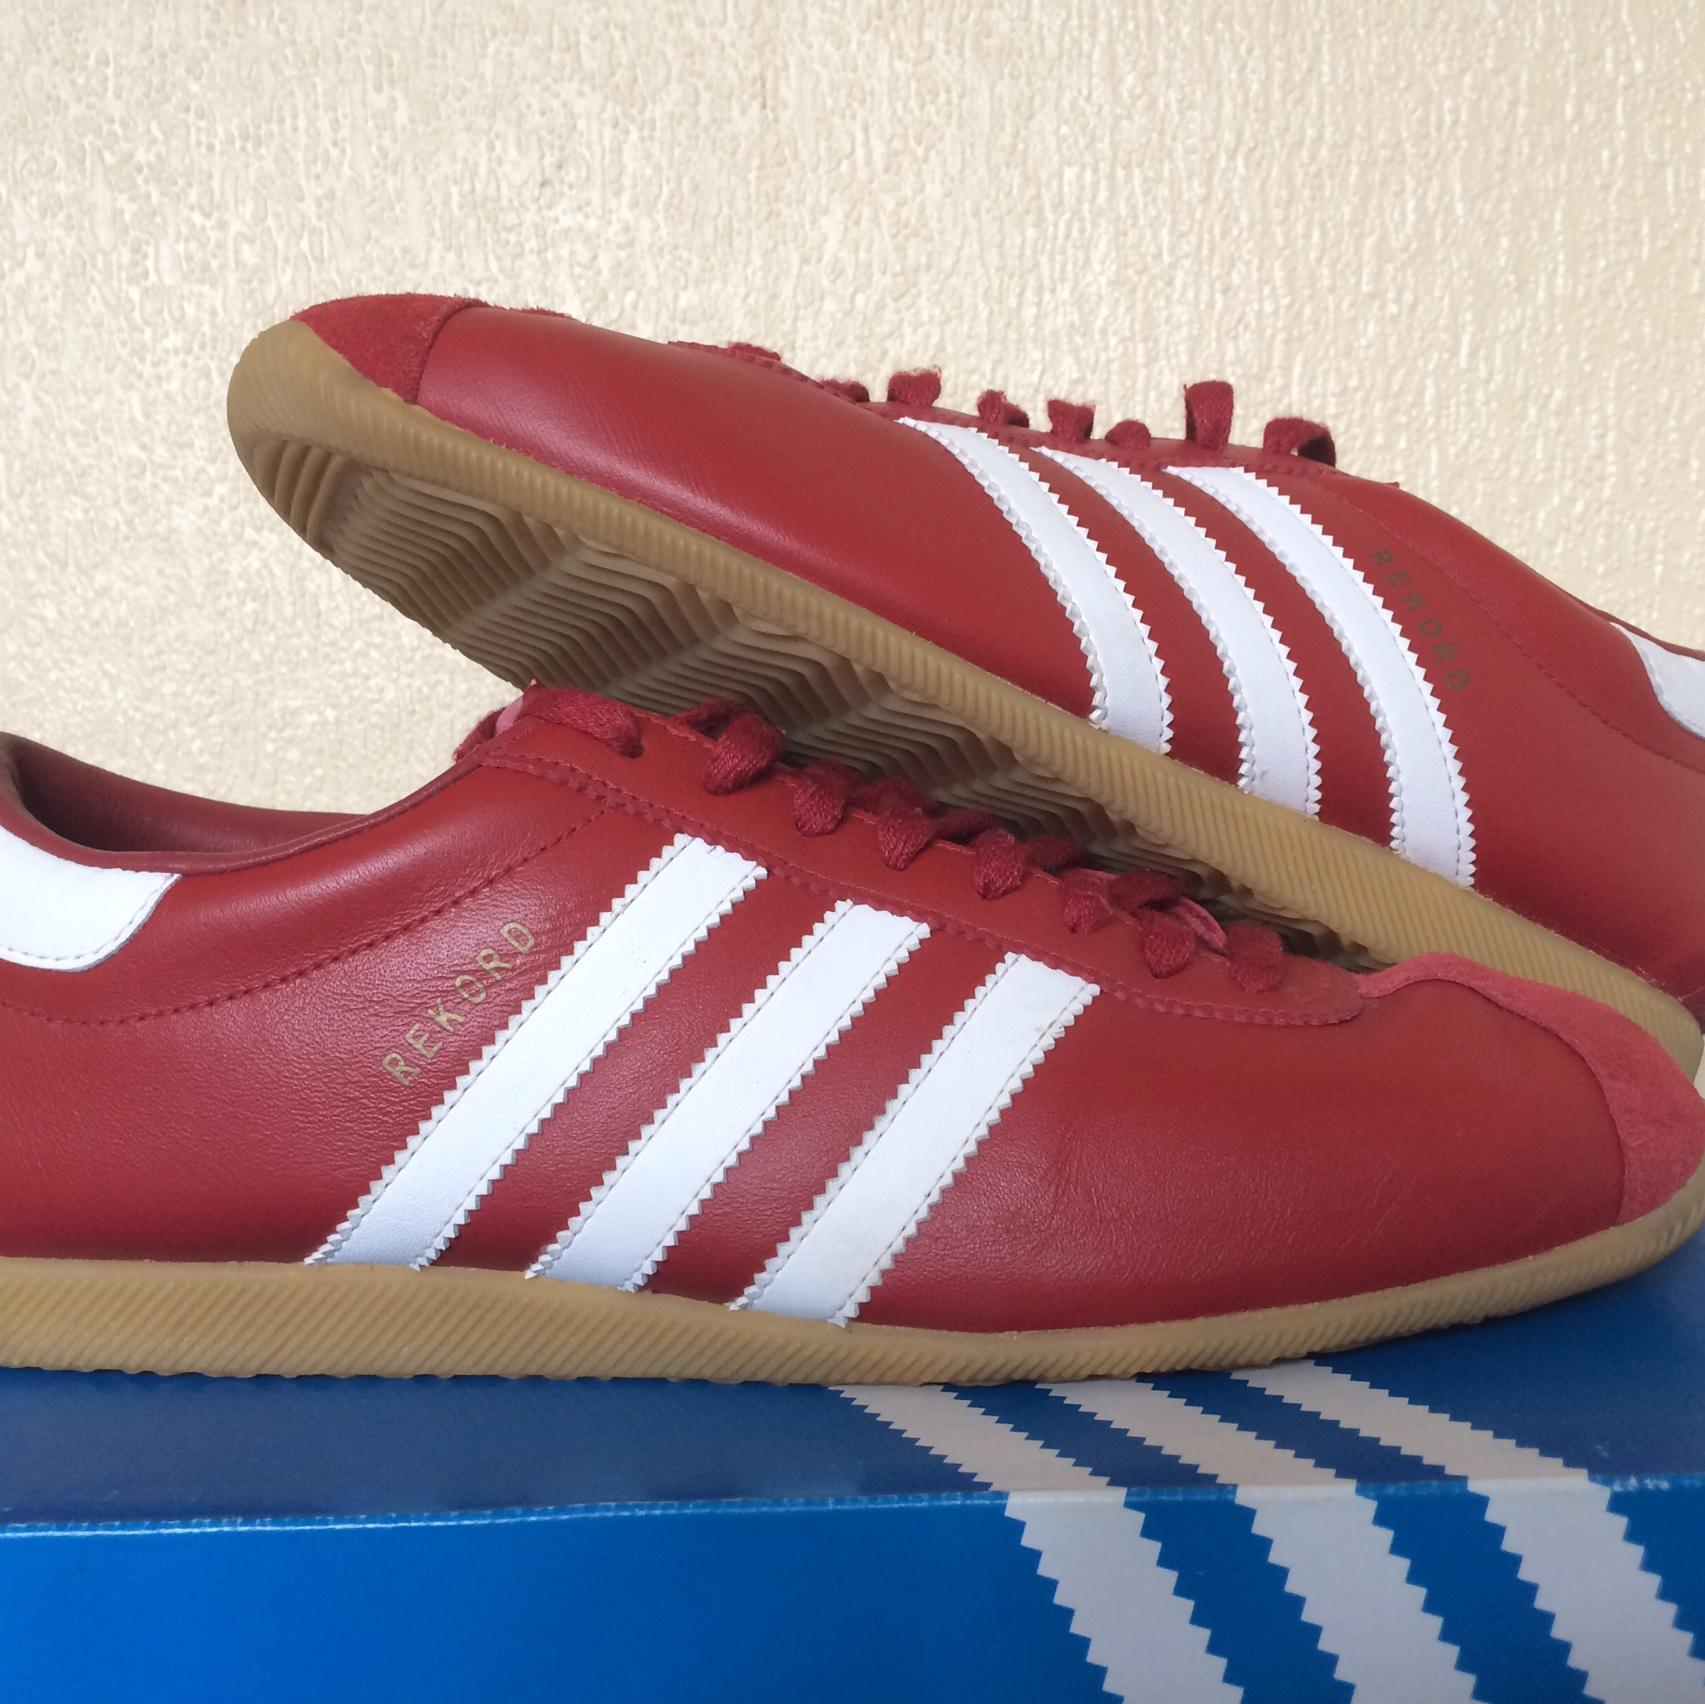 énorme réduction 21d27 7ccd1 Adidas rekord. Leather is still in excellent... - Depop